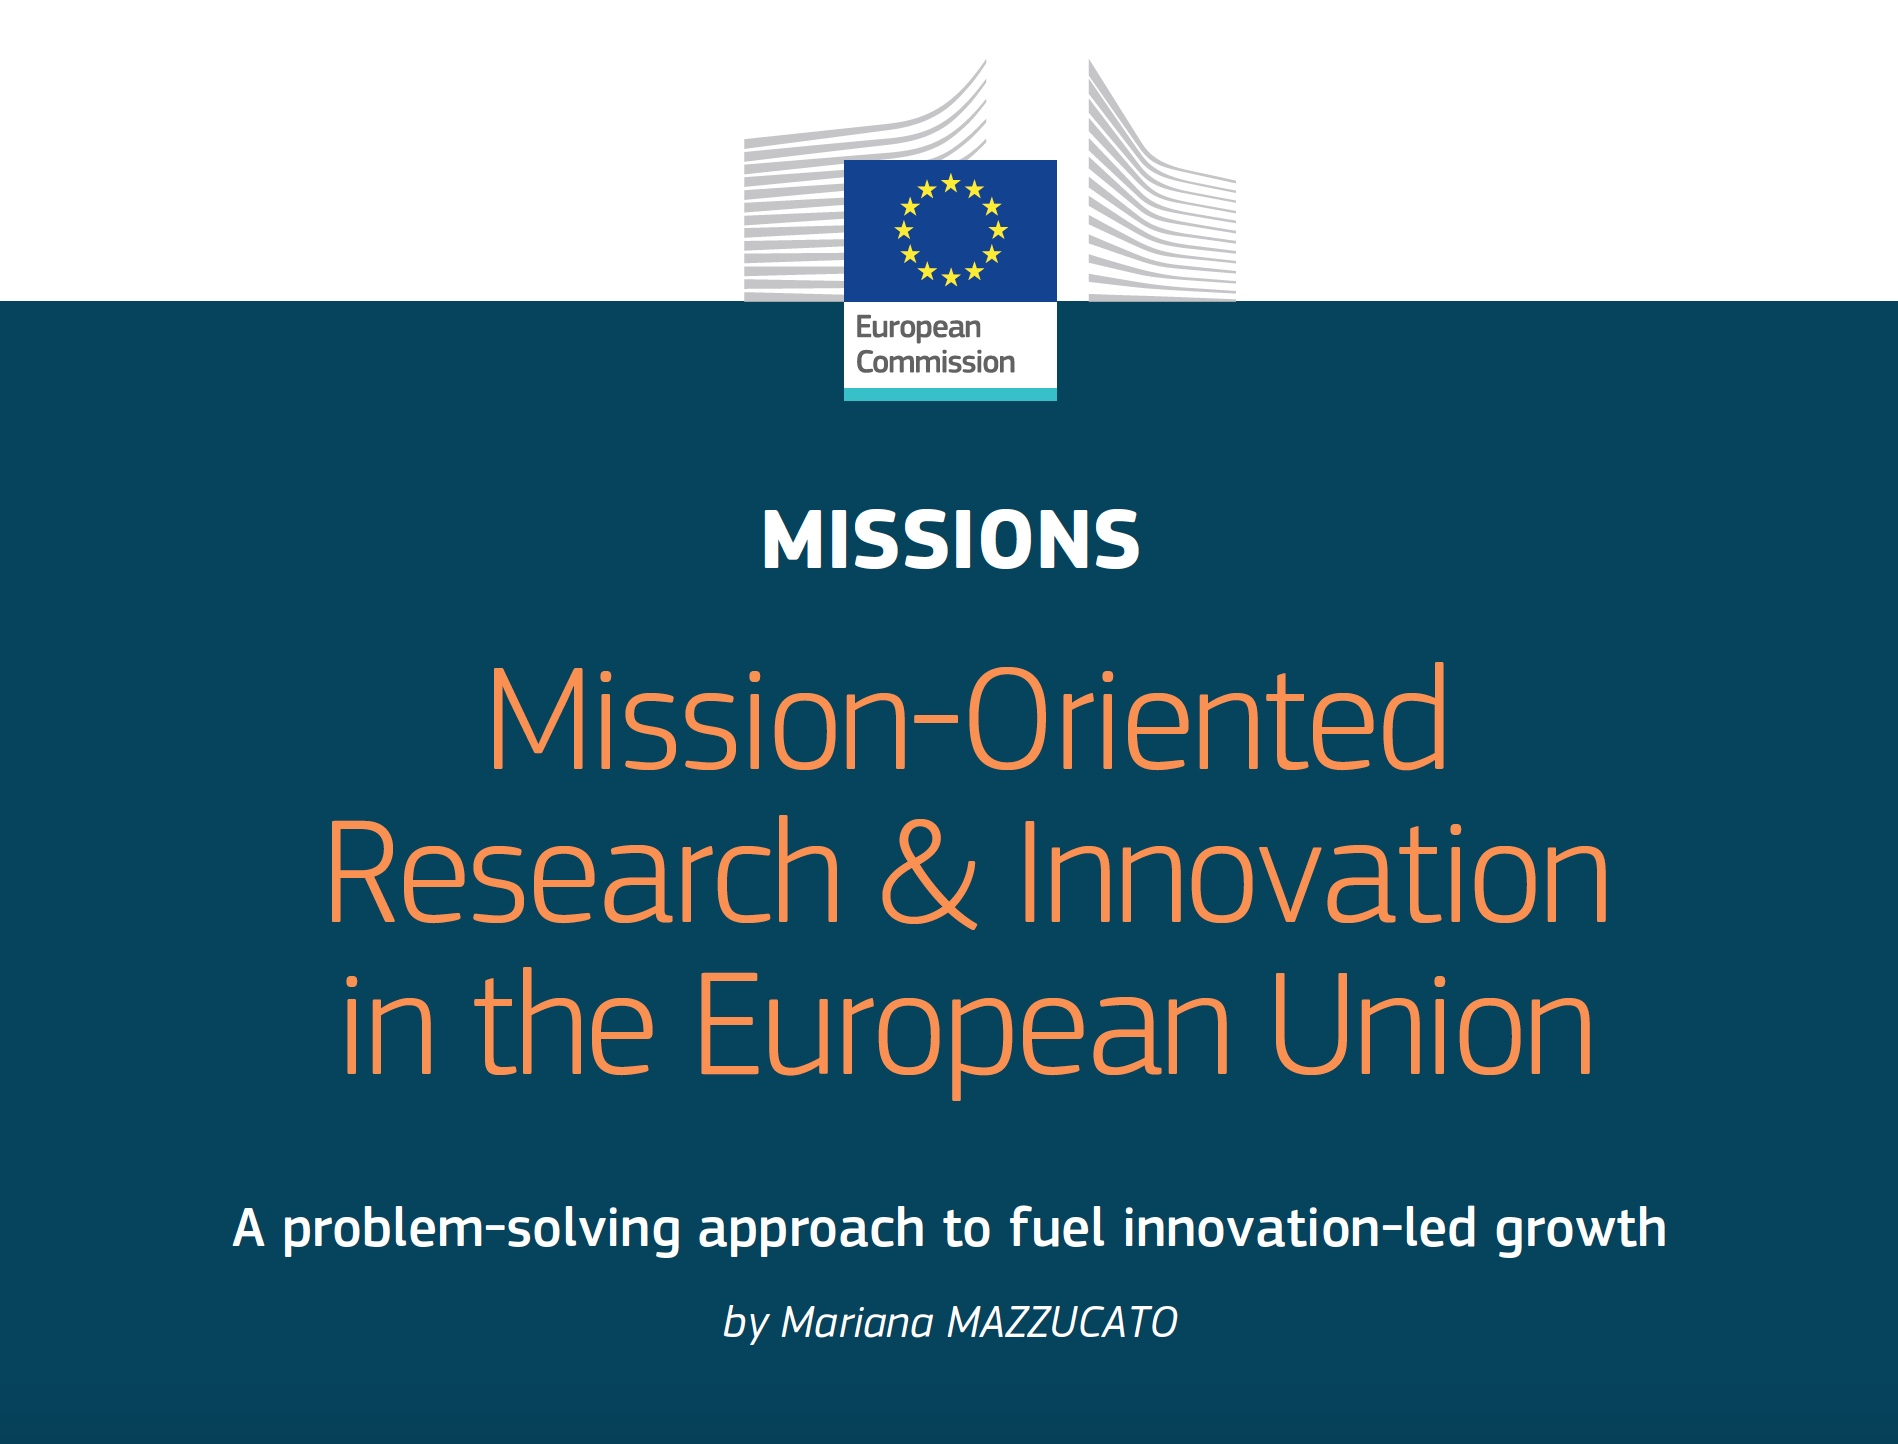 Systemic visions and experimentation – corner stones of research and innovation missions